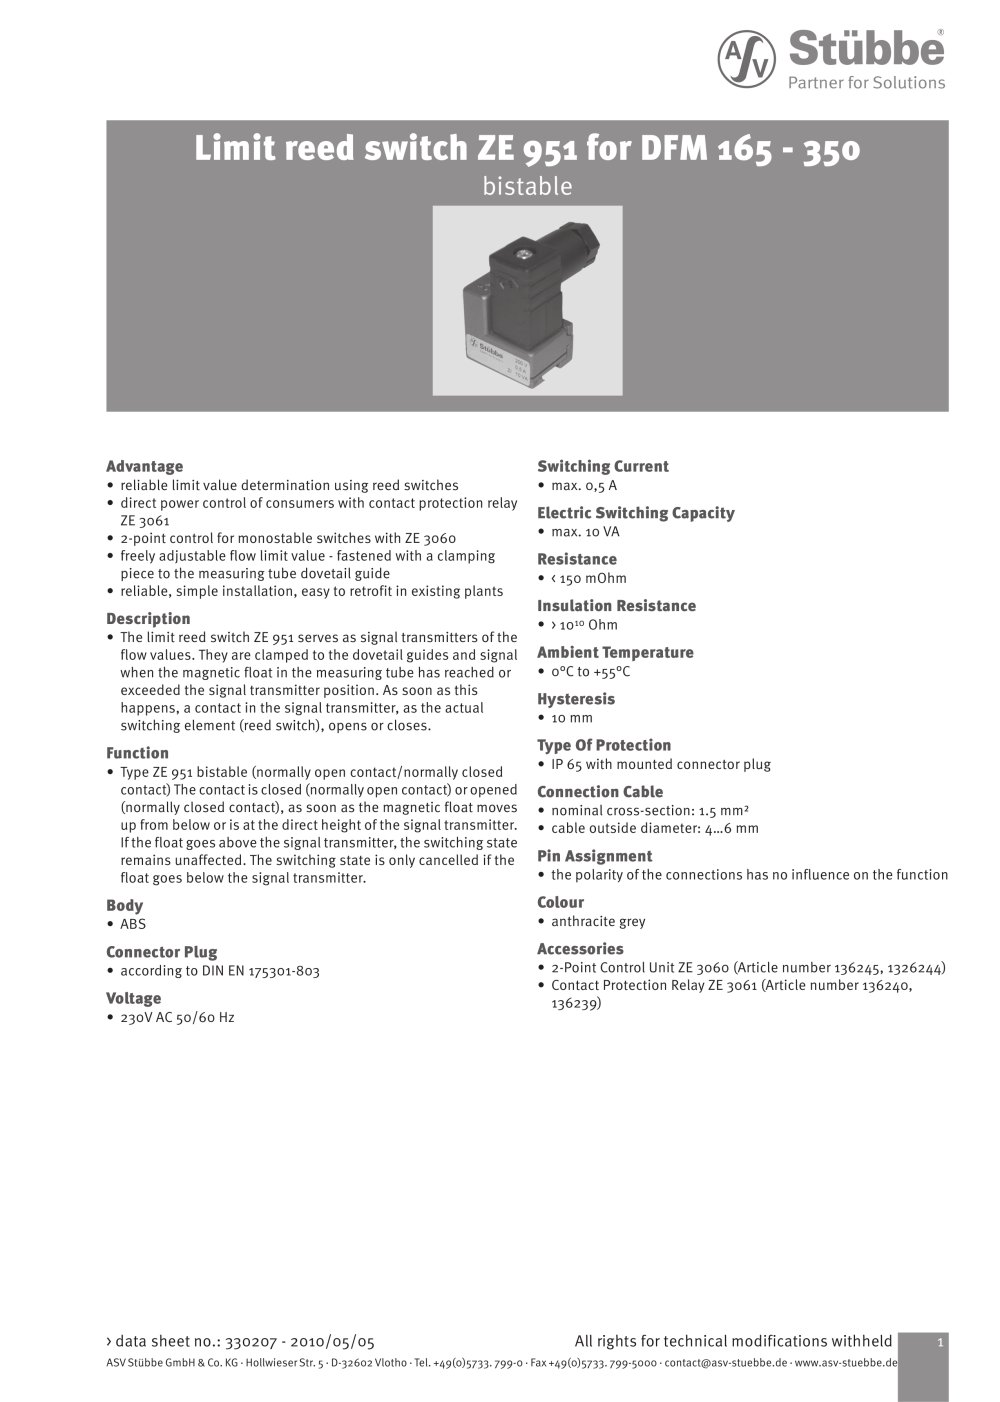 Limit Reed Switch Ze951 Asv Stuebbe Gmbh Co Kg Pdf Catalogue 4 Pin Relay Wiring Diagram 1 Pages